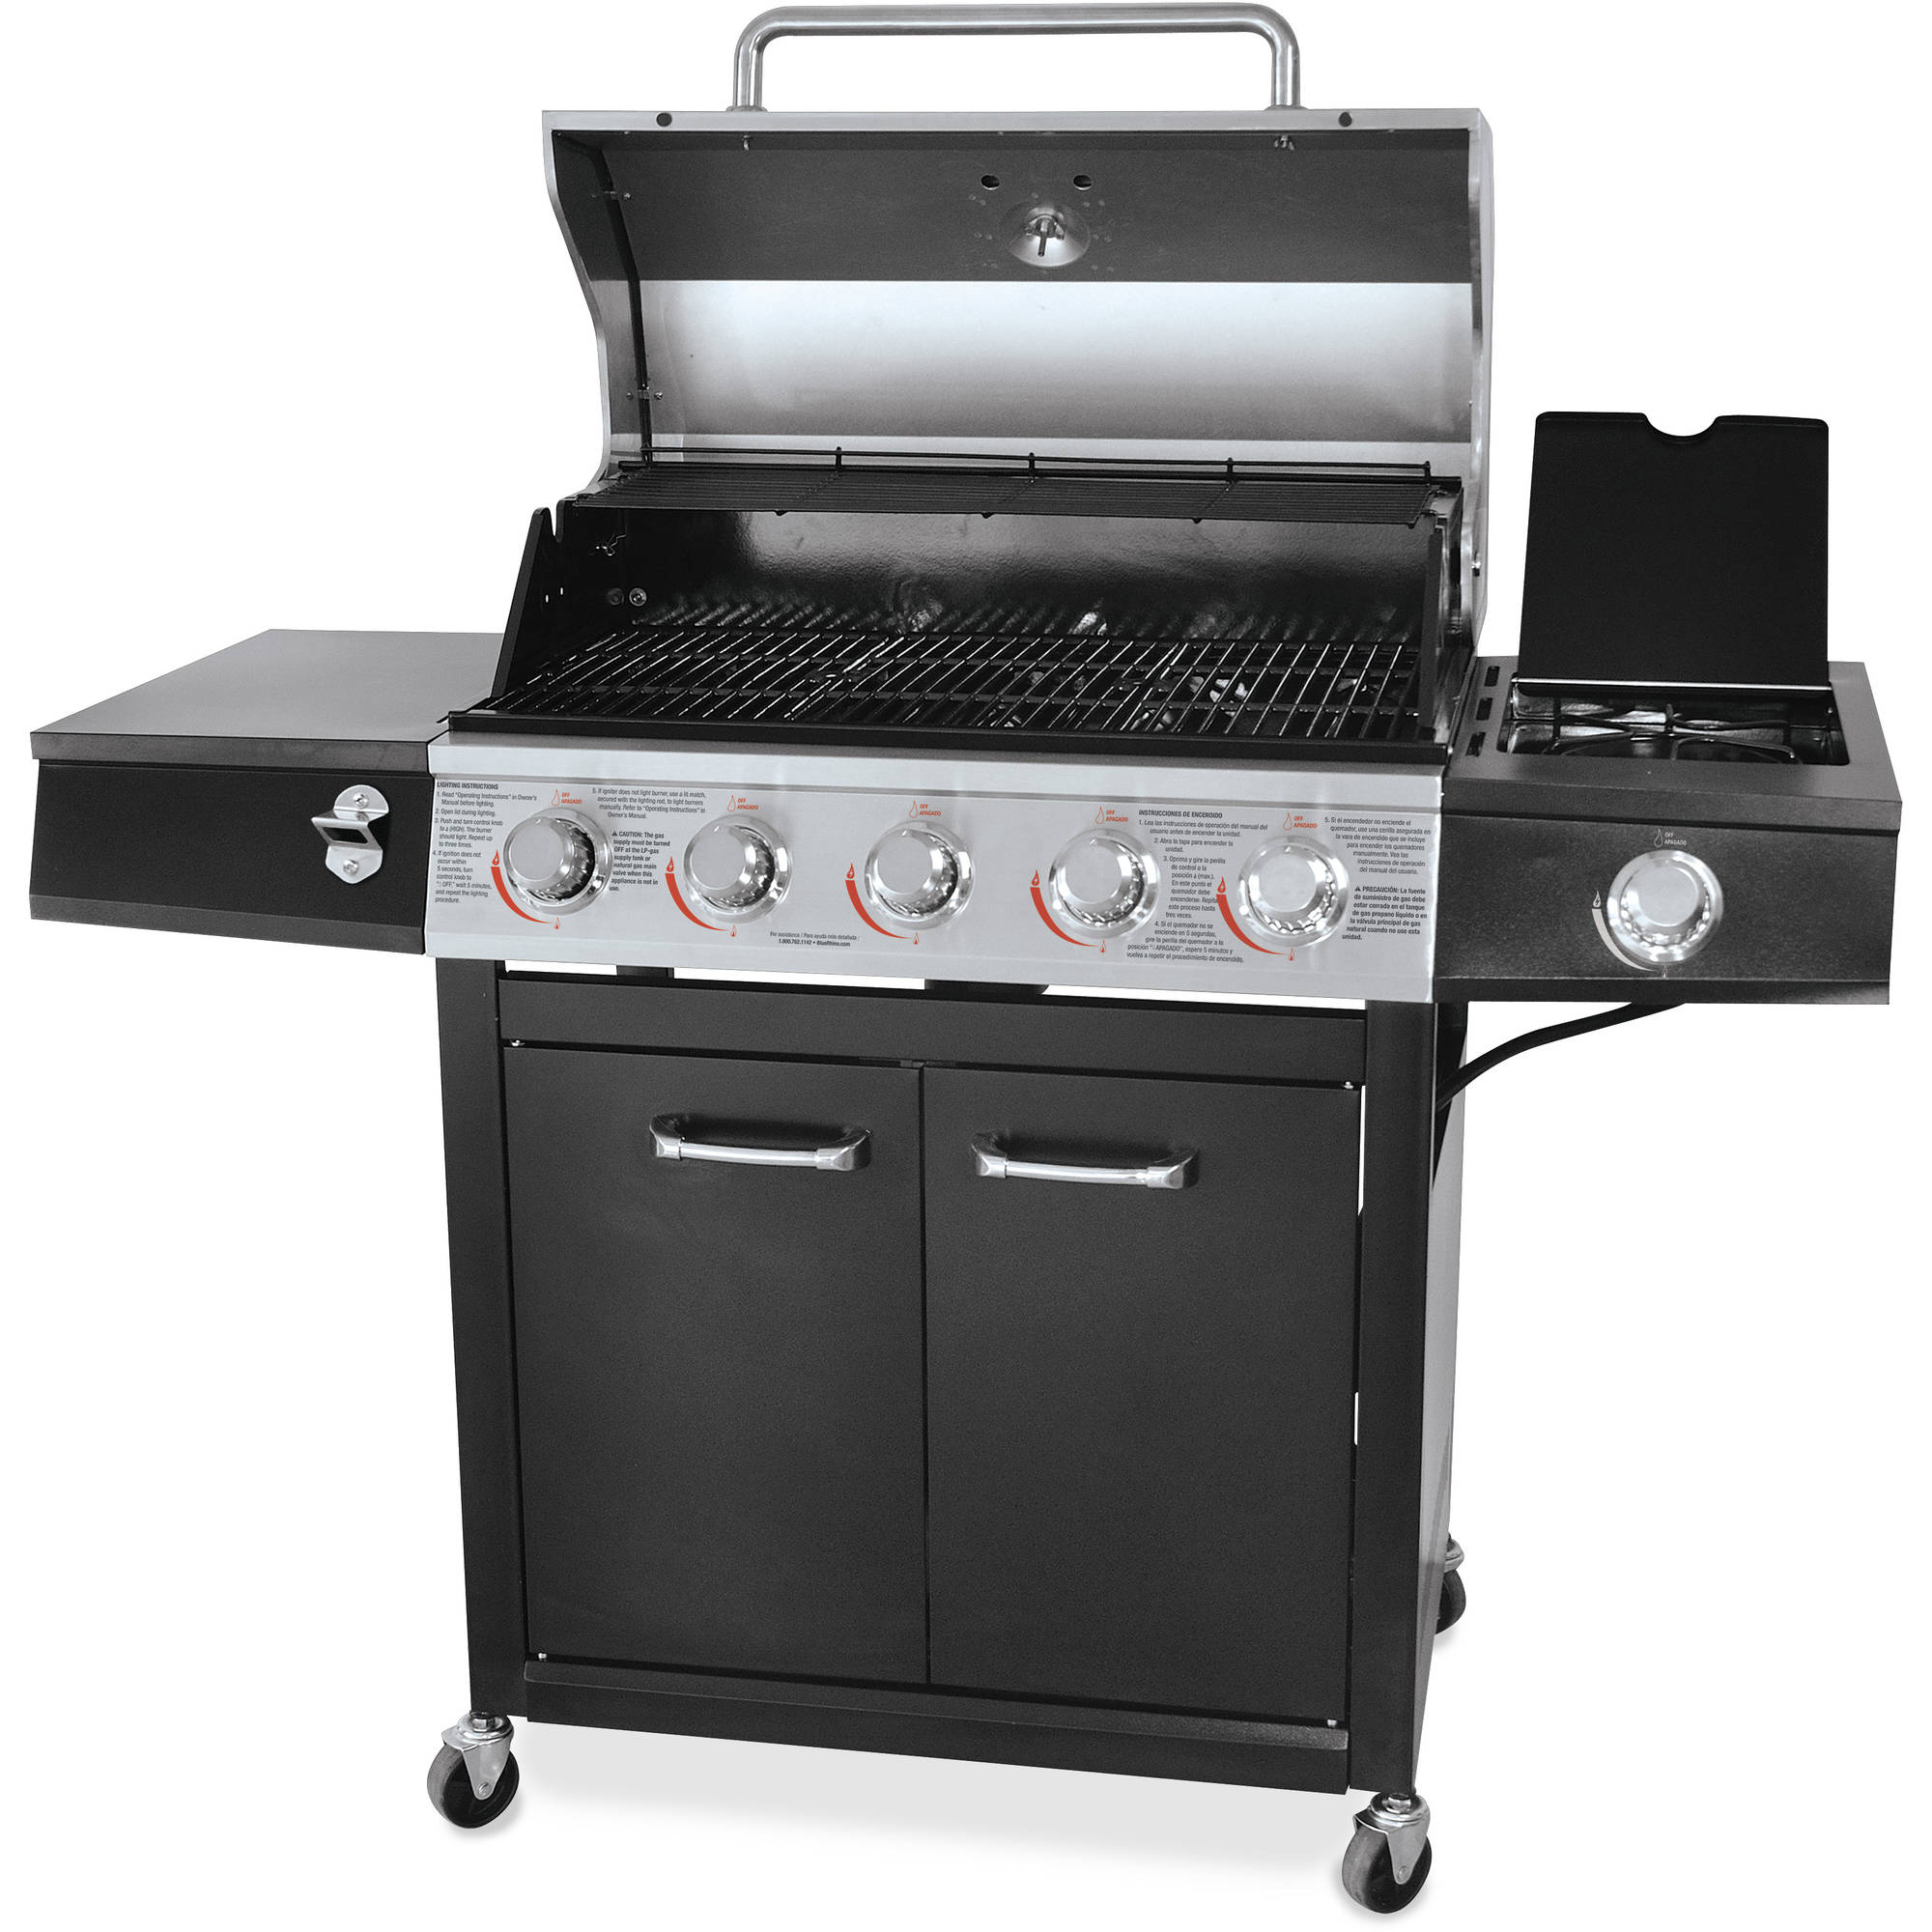 backyard grill 72 000 btu 5 burner gas grill stainless steel